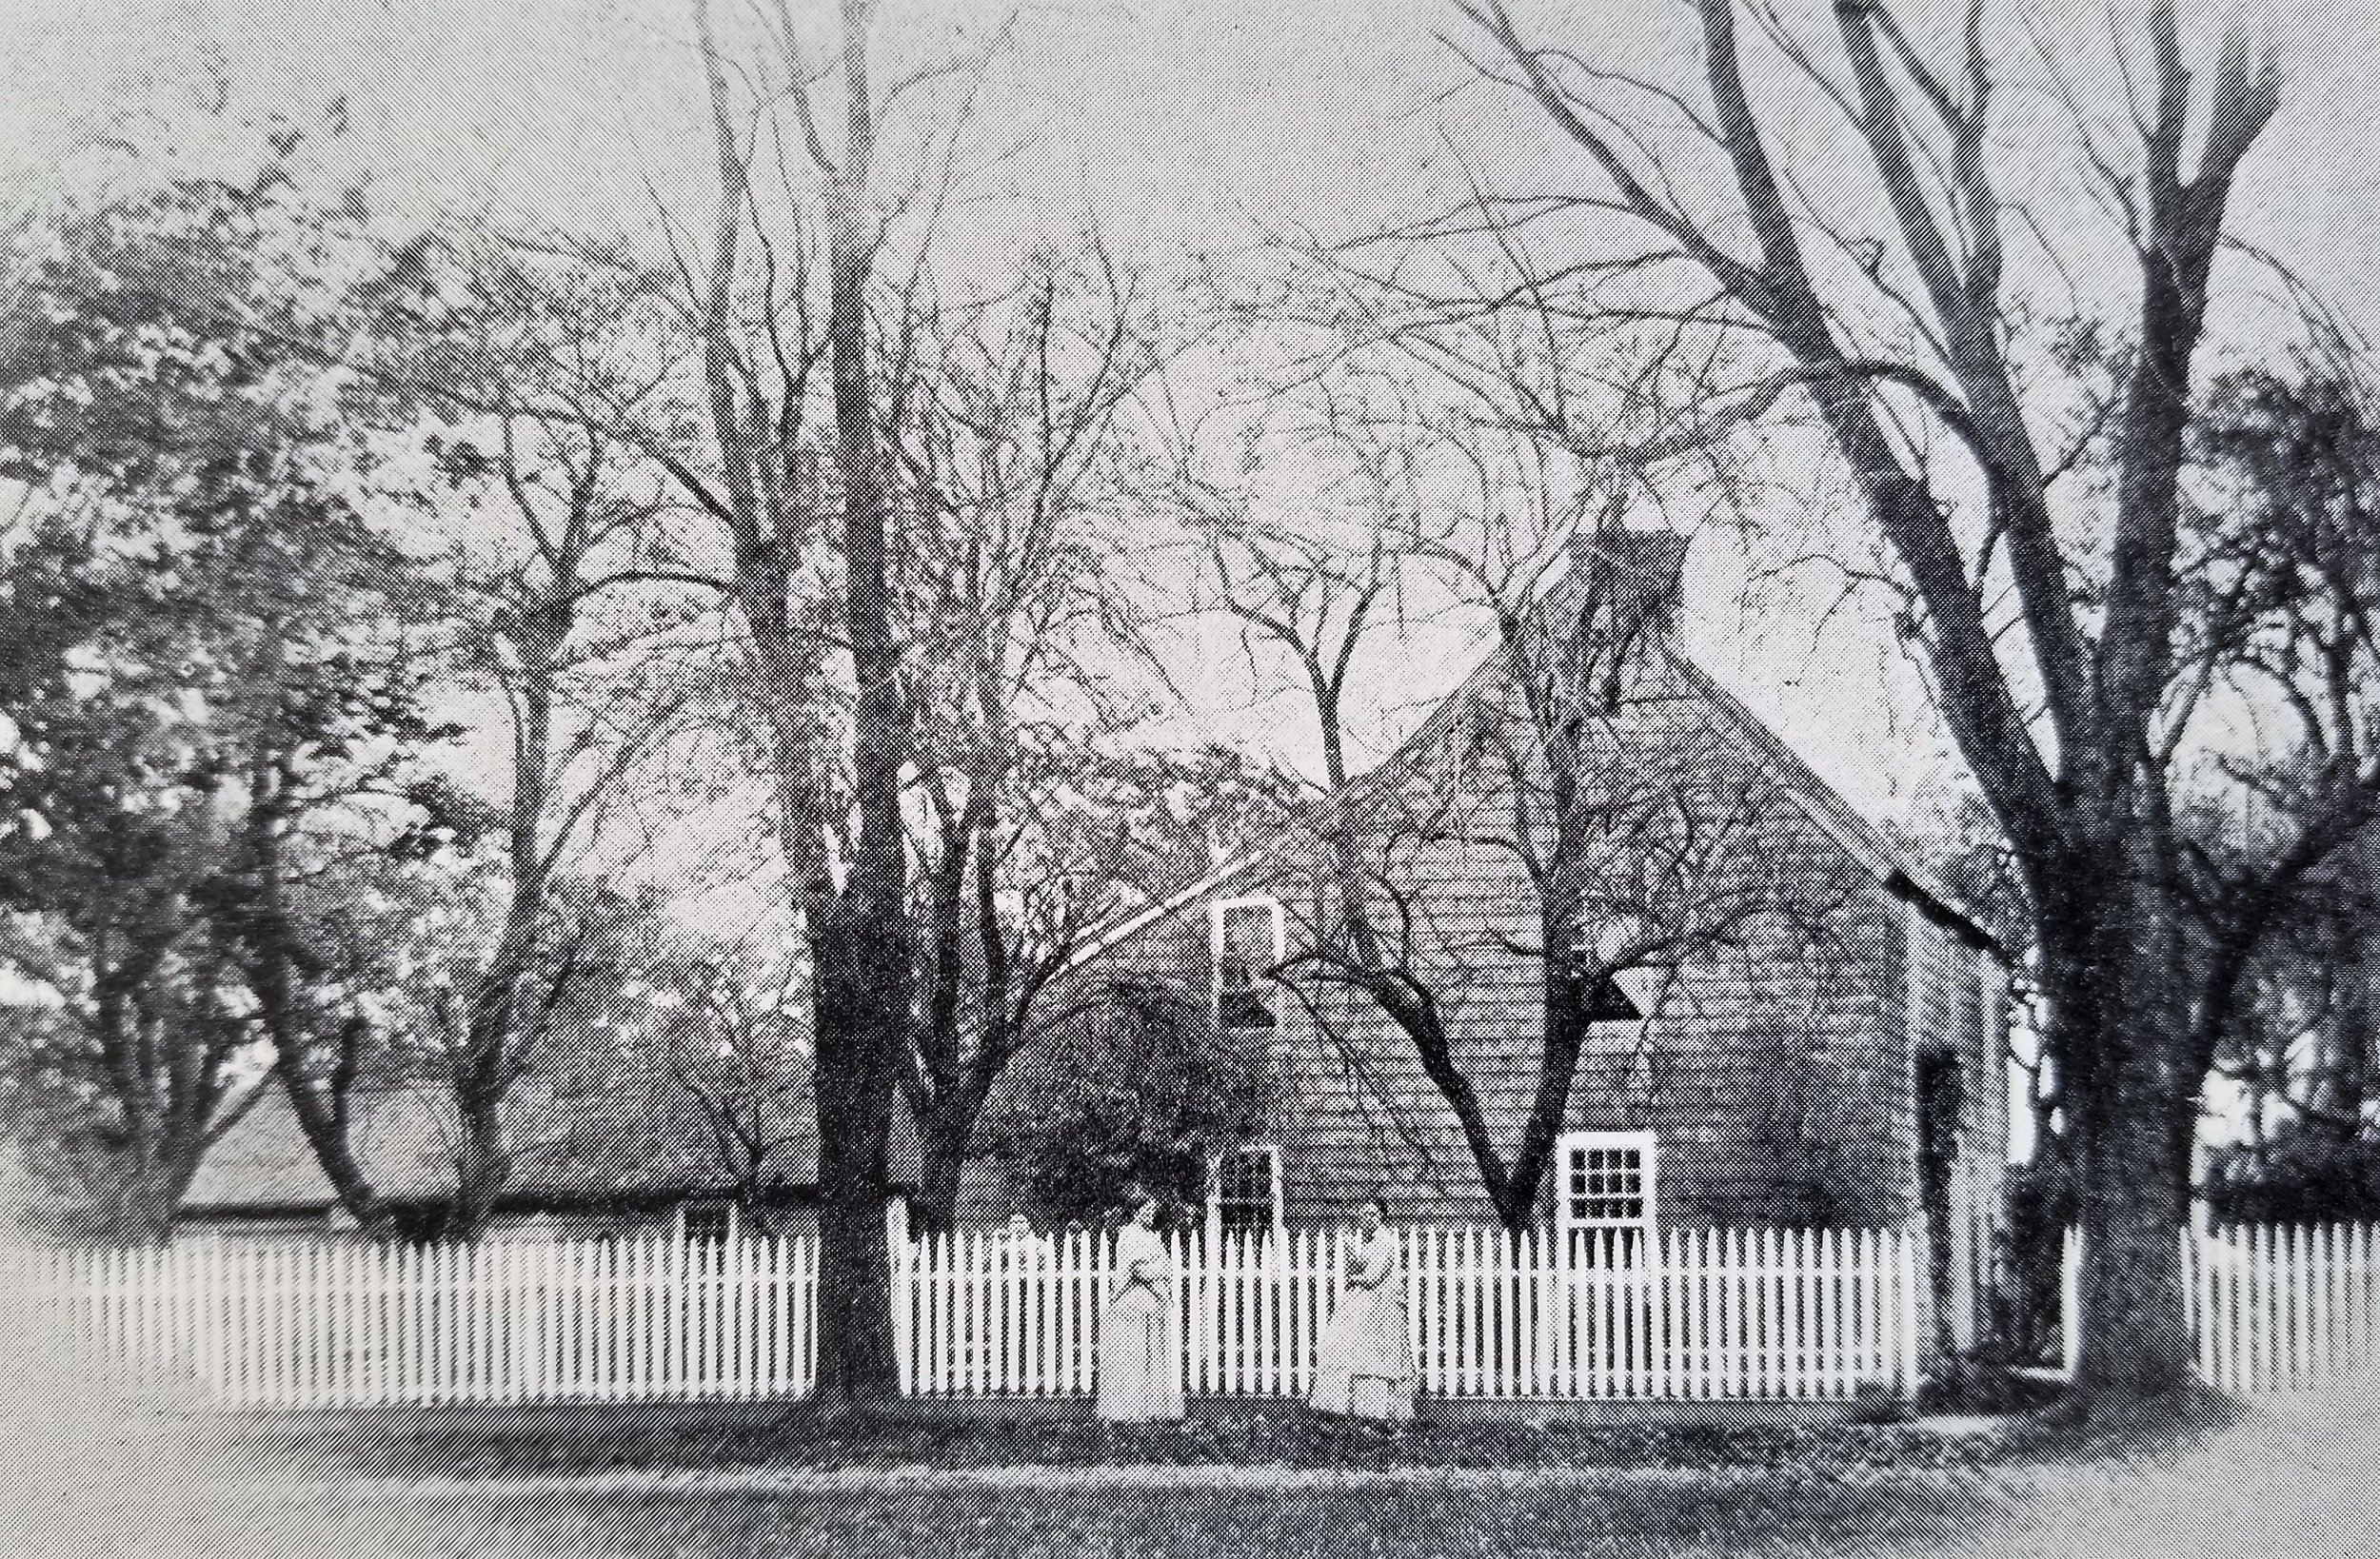 The Huntting Inn, c. 1870 Nathaniel Huntting's home stood at the corner of Main Street & Huntting Lane in East Hampton. Enlarged over the years, it is known today as the Huntting Inn. For more info, read  Before it was the Huntting Inn , by Gina Piastuck, East Hampton Star, Nov 29, 2018